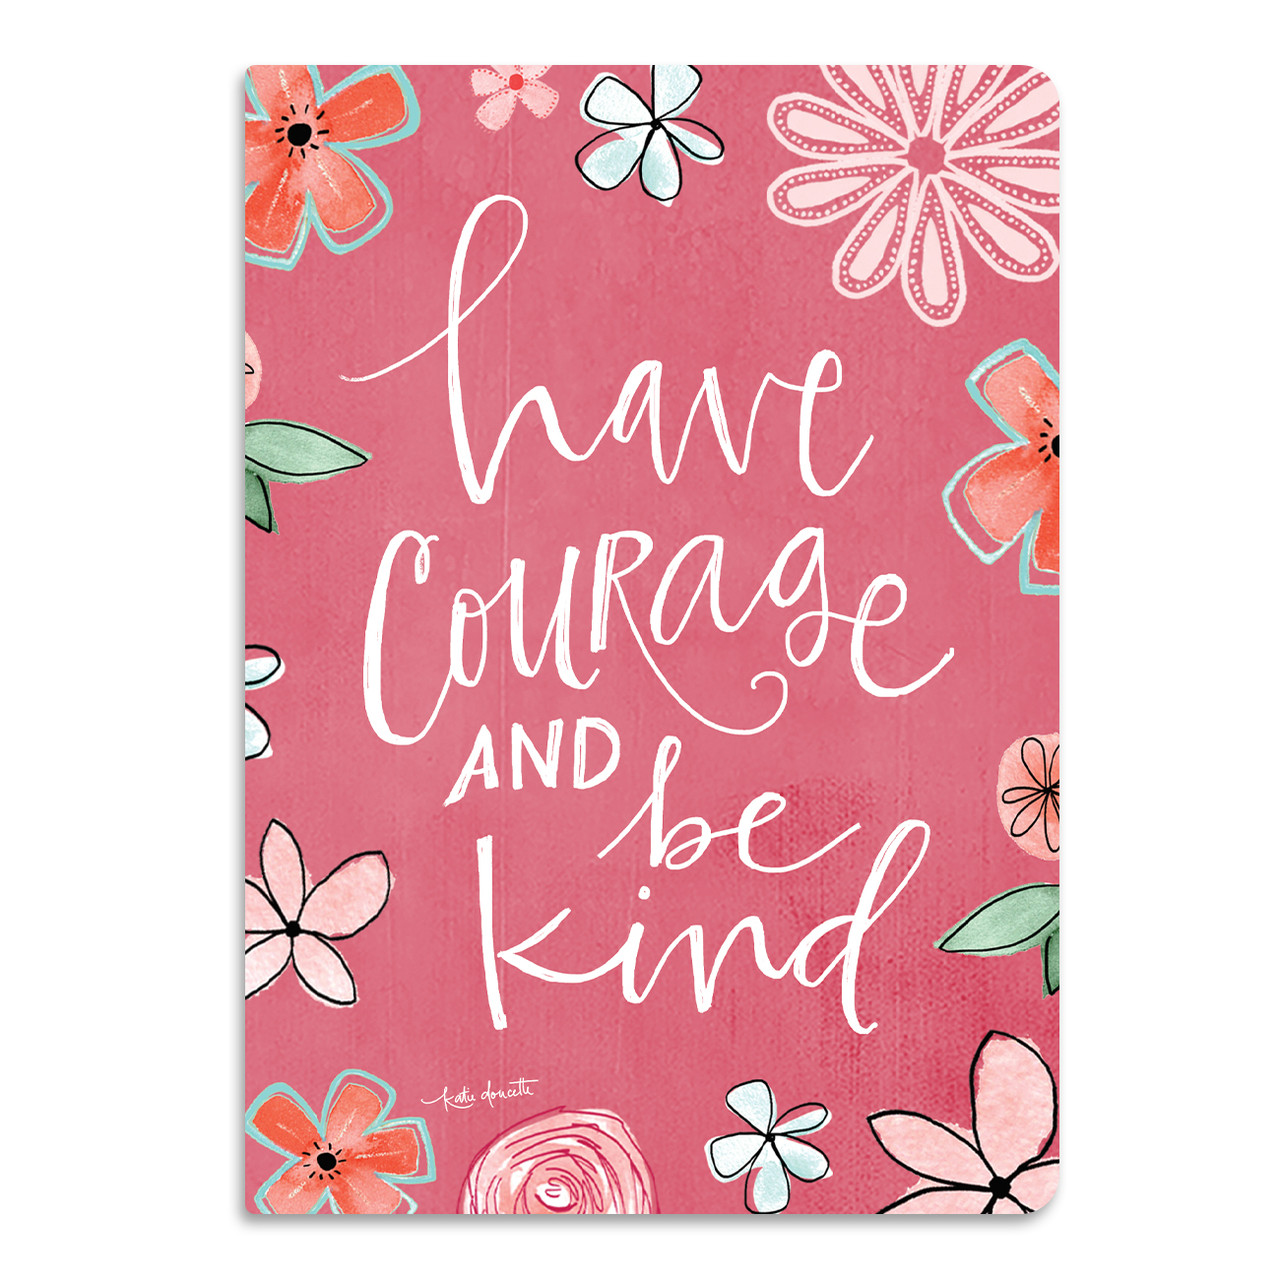 Have courage and be kind softcover journal brownlow gifts